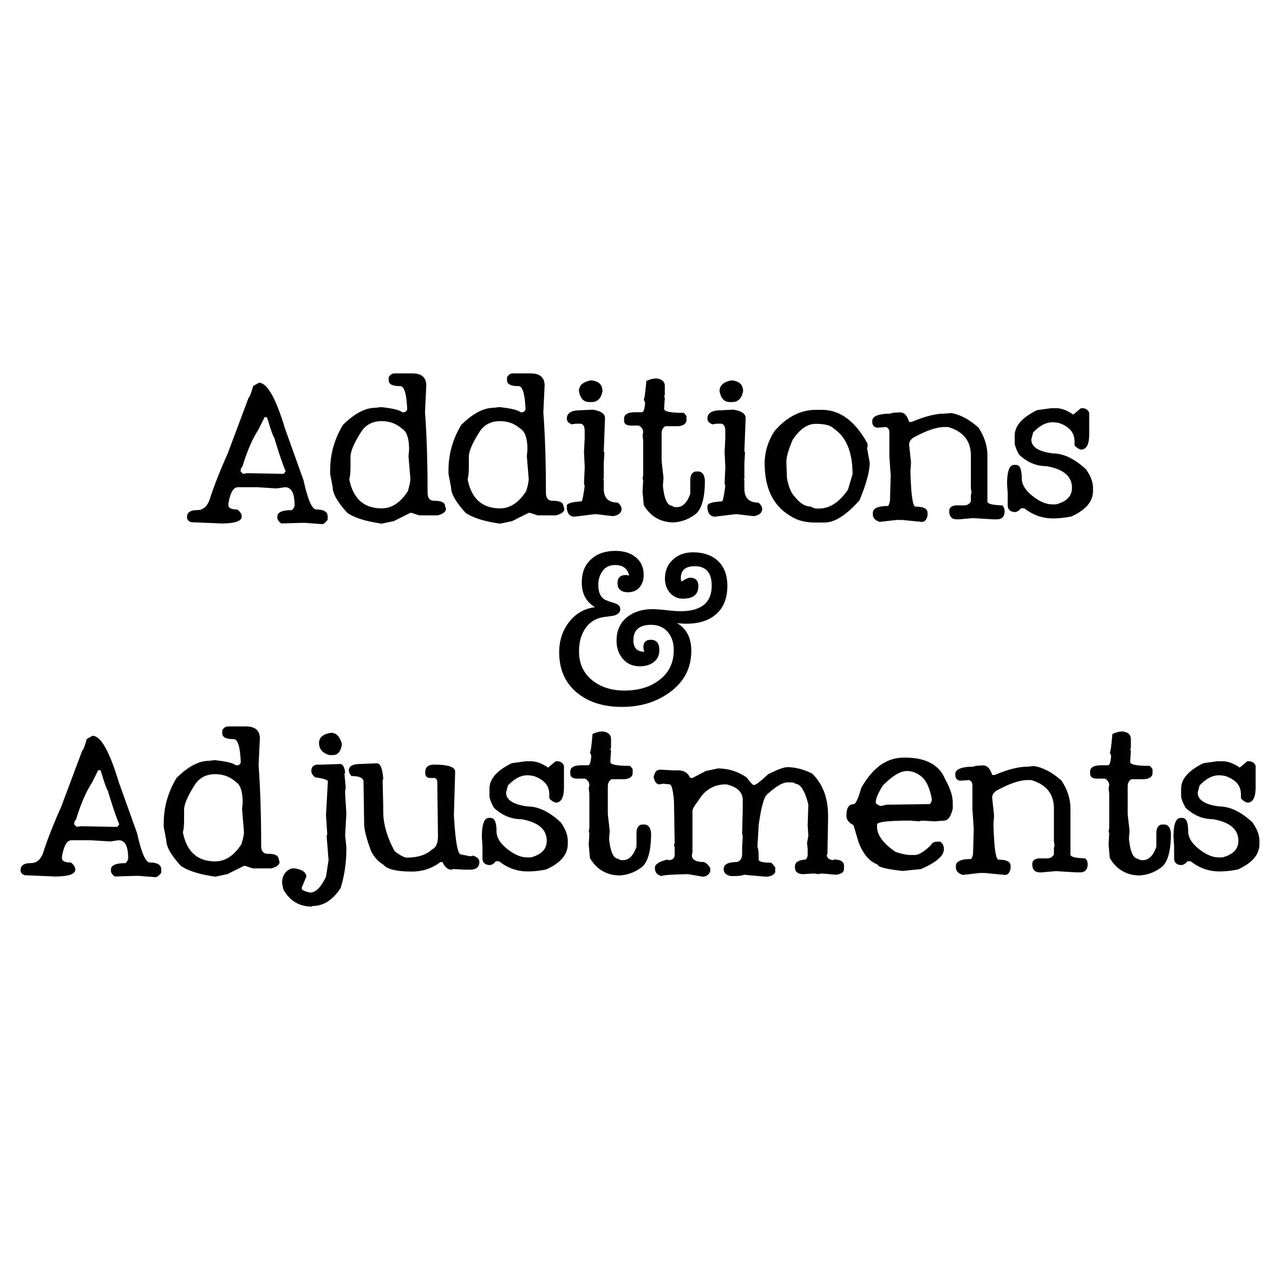 Additions & Adjustments